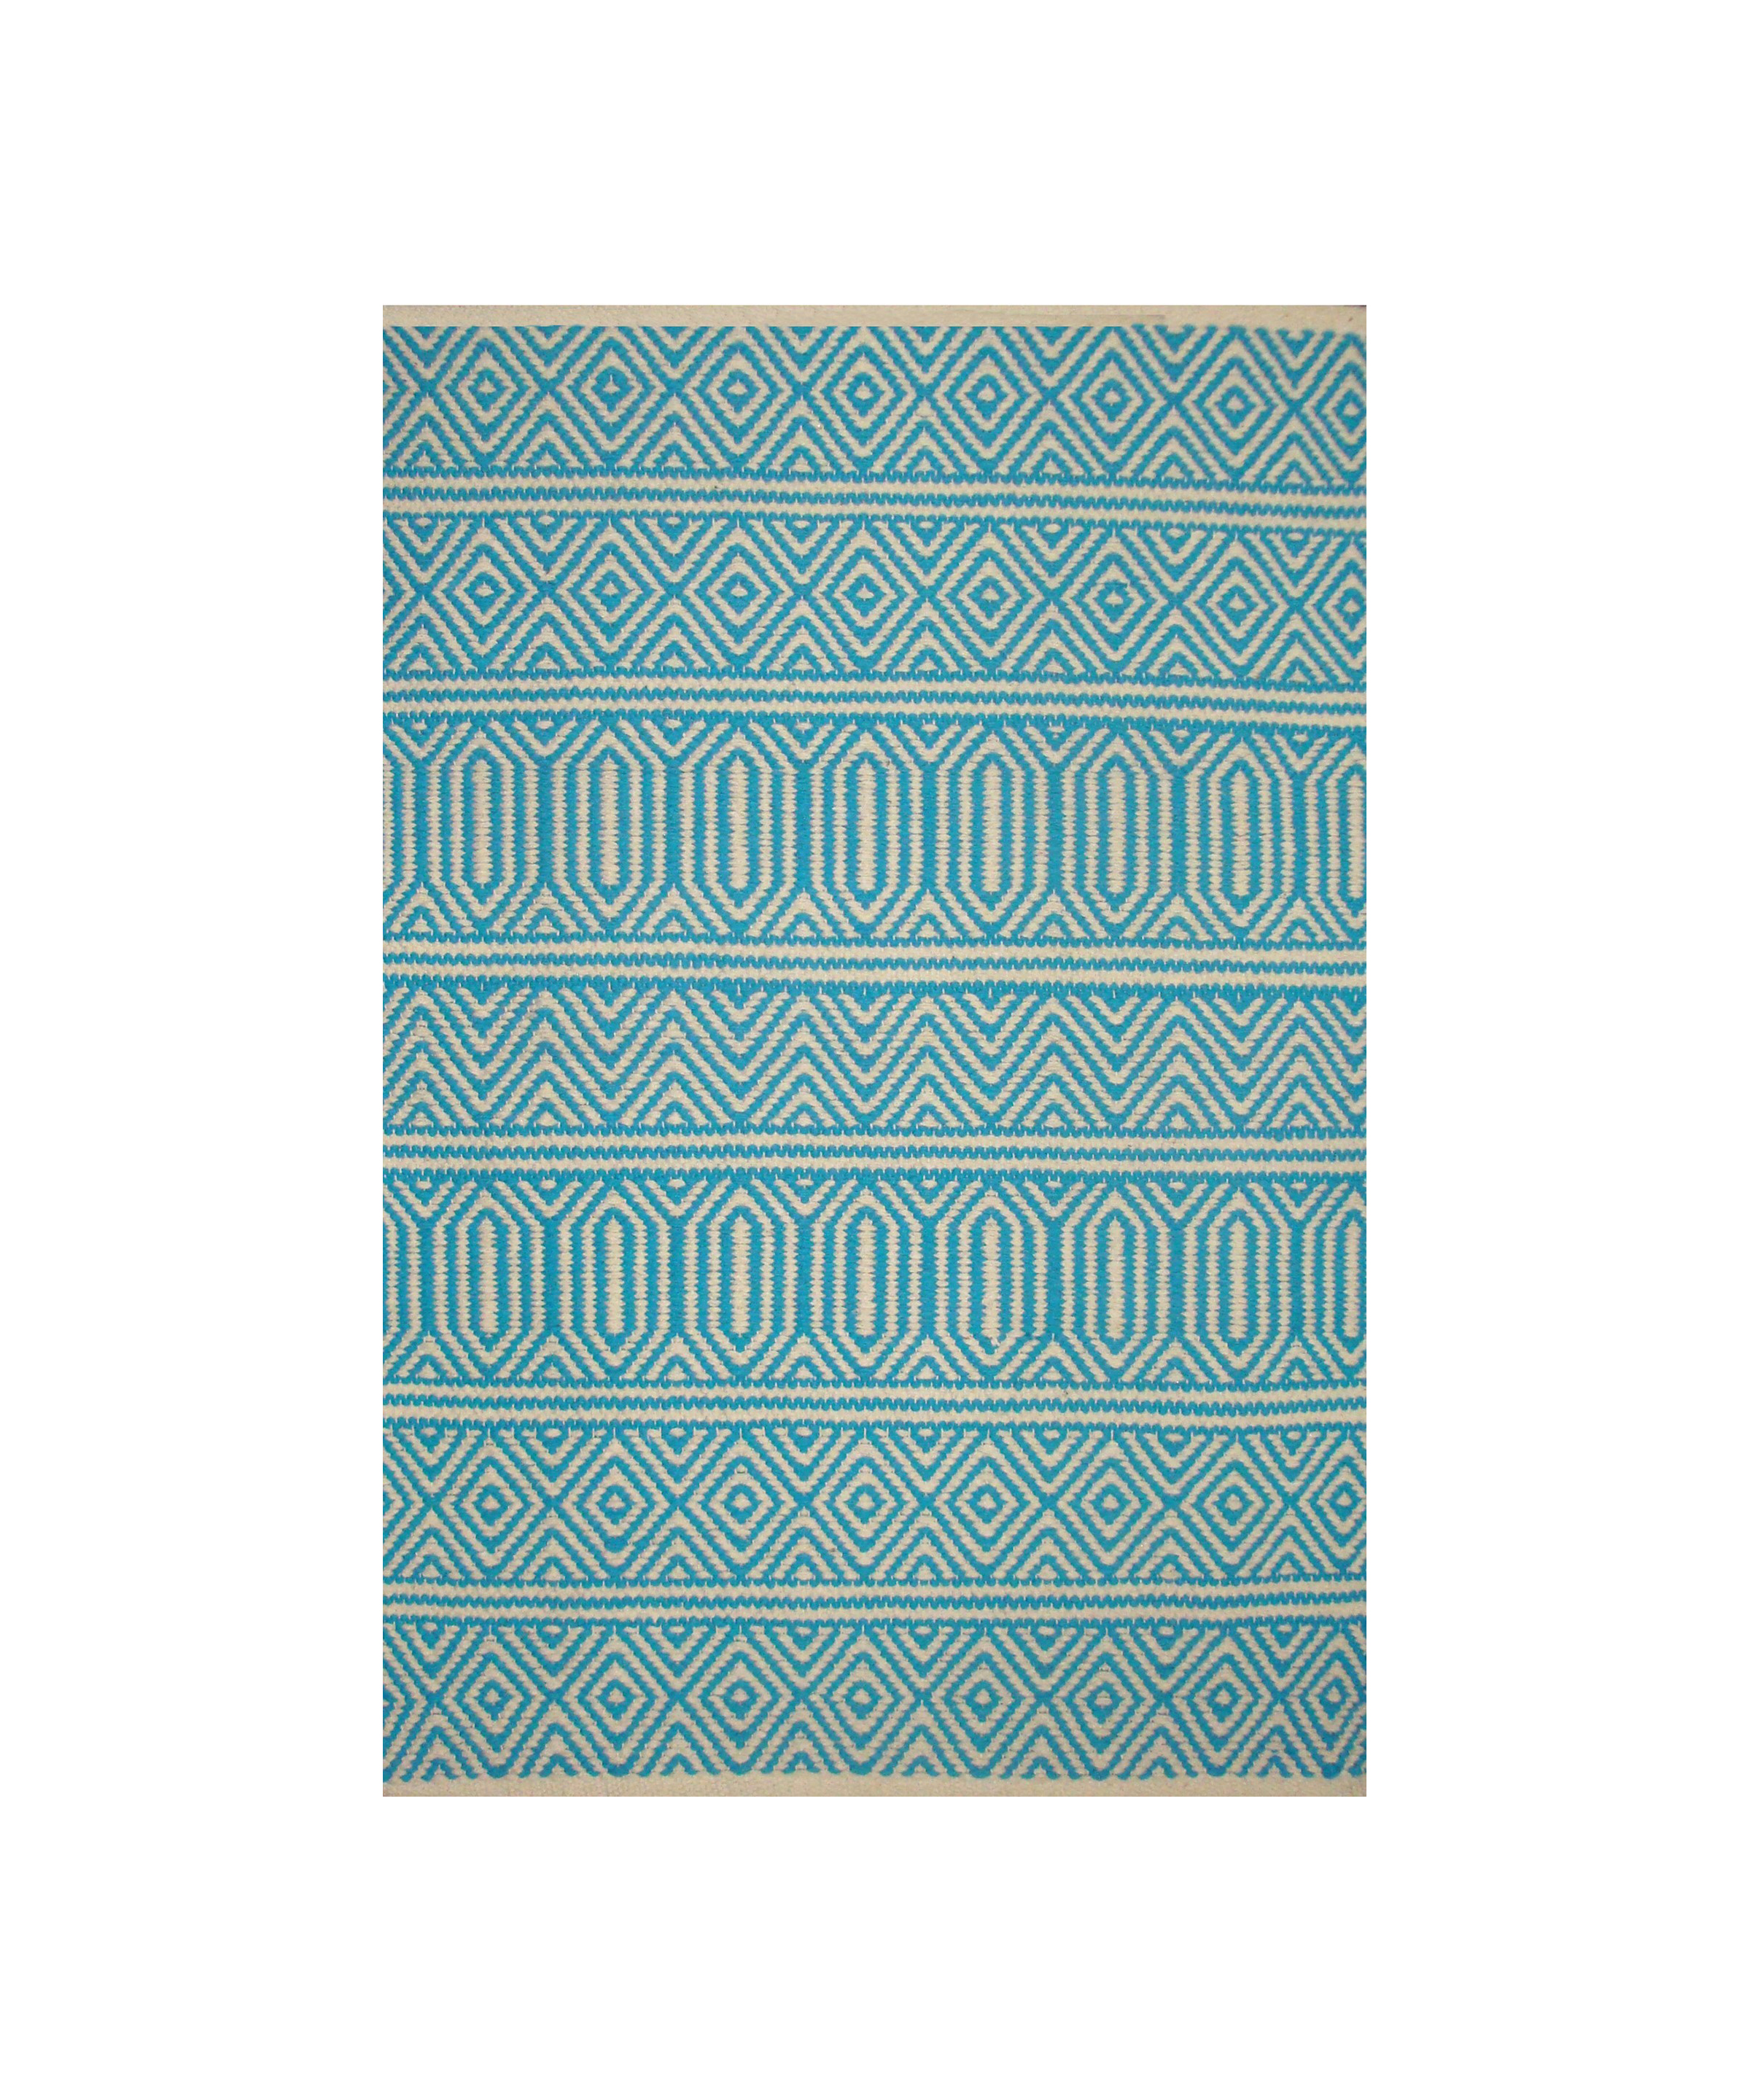 Dhurrie Geo Aqua (Available Sizes: 3x5, 4x6, 5x8, 7x9), Amanda's House Of Elegance  ($68.95 – $286.95)